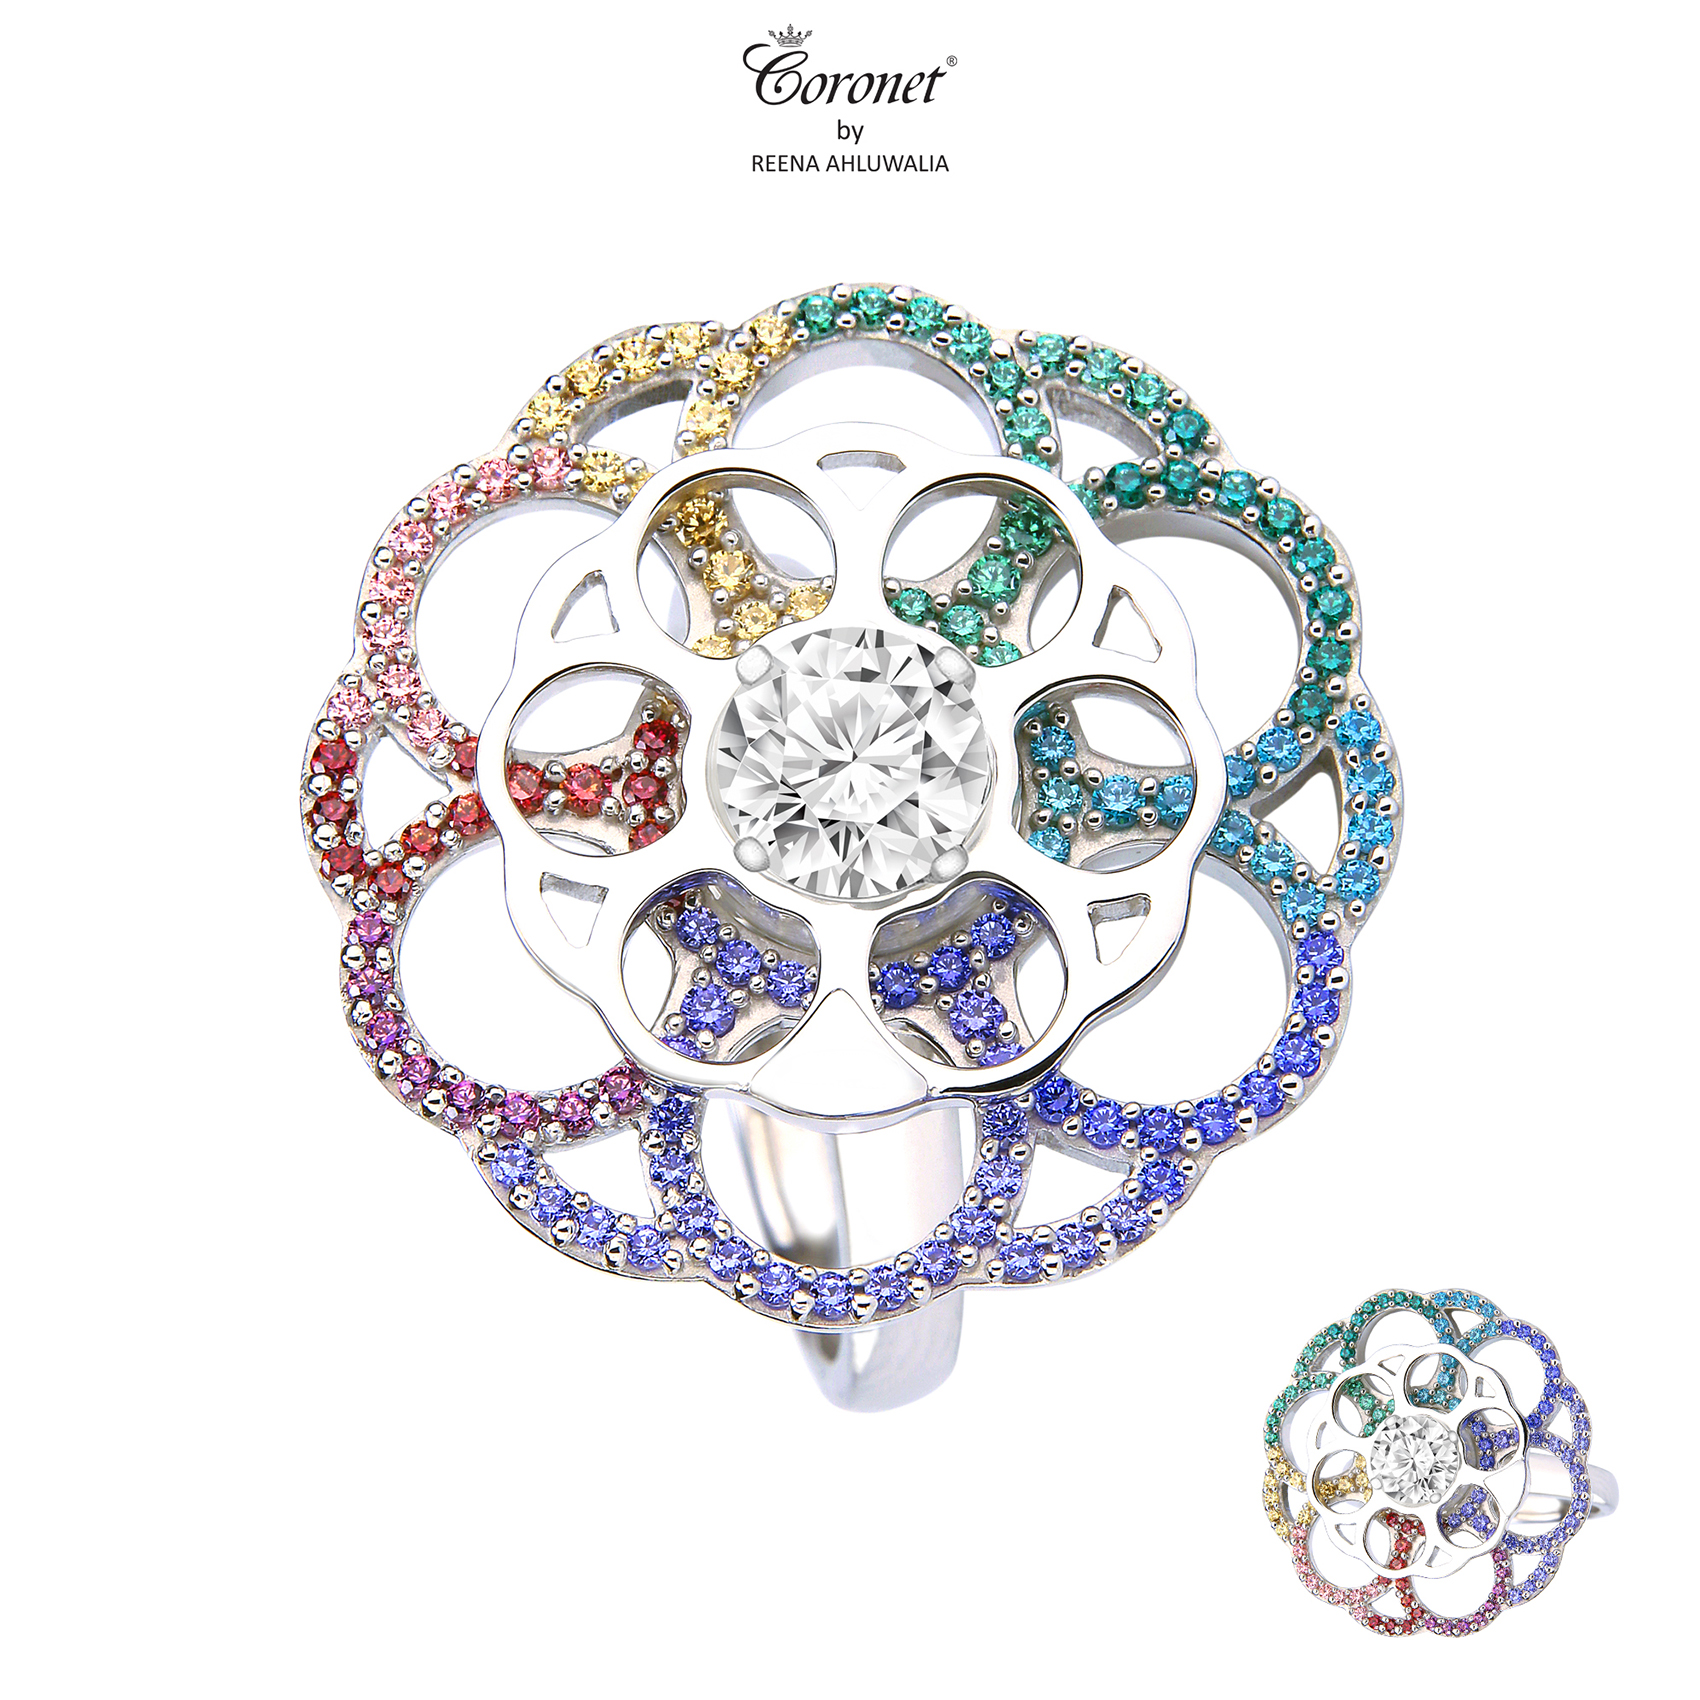 7_Coronet By Reena Ahluwalia_Silver_Swarovski_Soul Carousel Collection.jpg